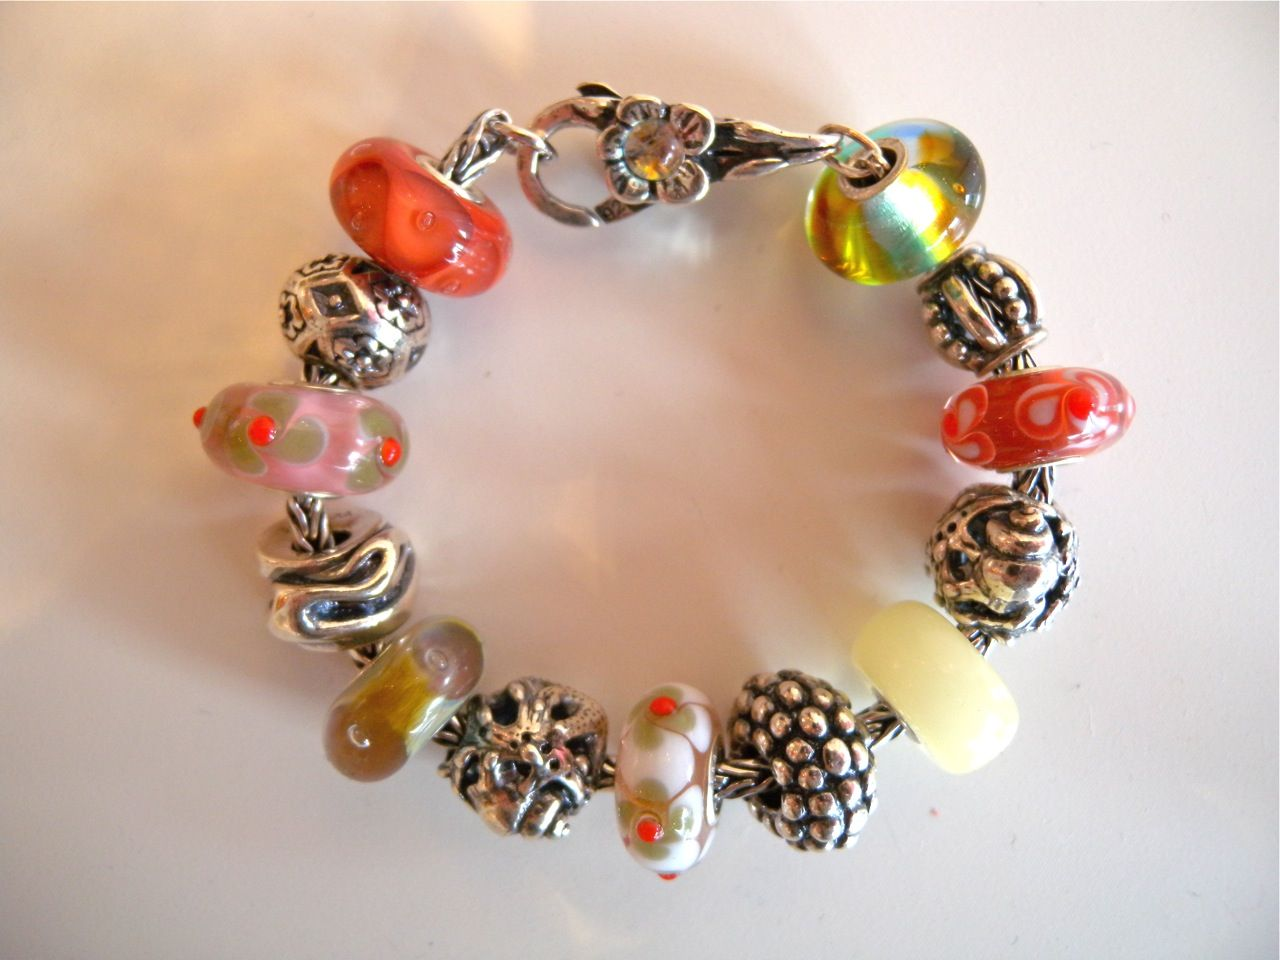 gb en of trollbeads shop beauty to bracelet bracelets int jewellery ready spring wear trollbead